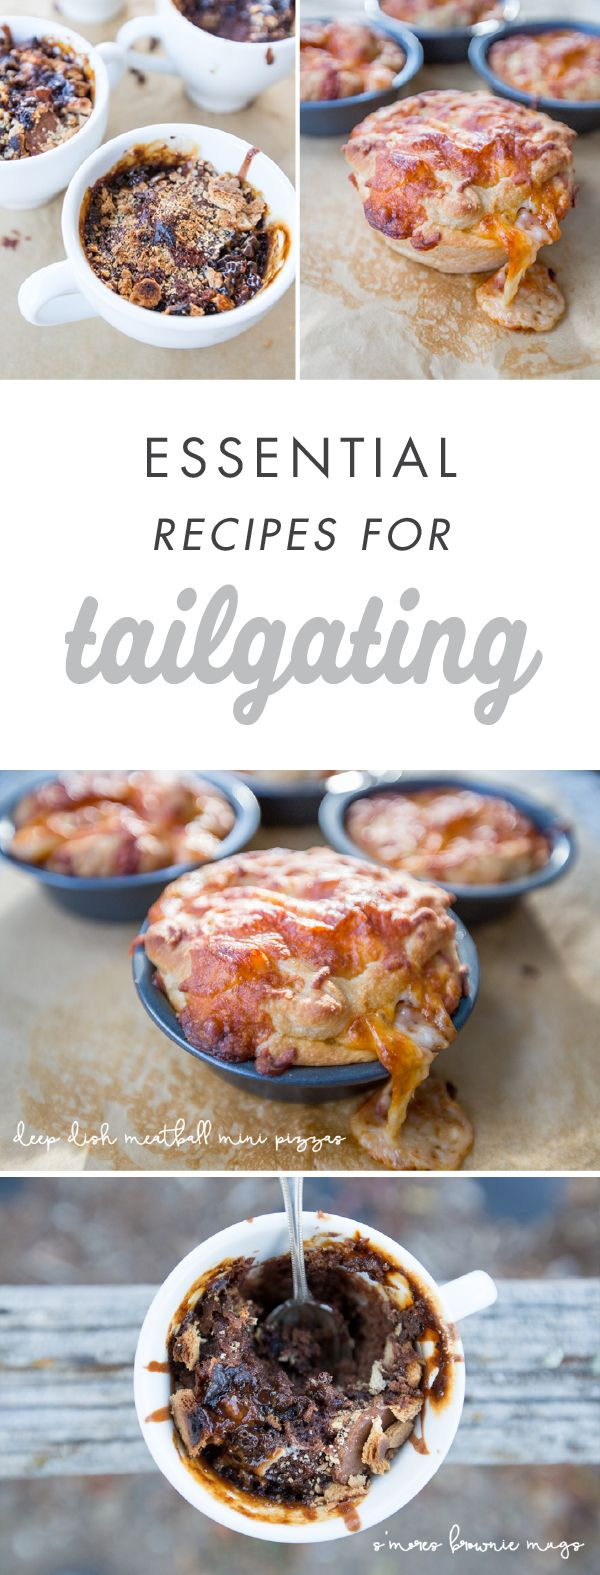 Score a touchdown with your party guests when you serve up these delicious tailgating recipes—like Deep Dish Meatball Mini Pizzas and S'mores Brownie Mugs. From appetizers to dessert it looks like your Game Day menu is set!